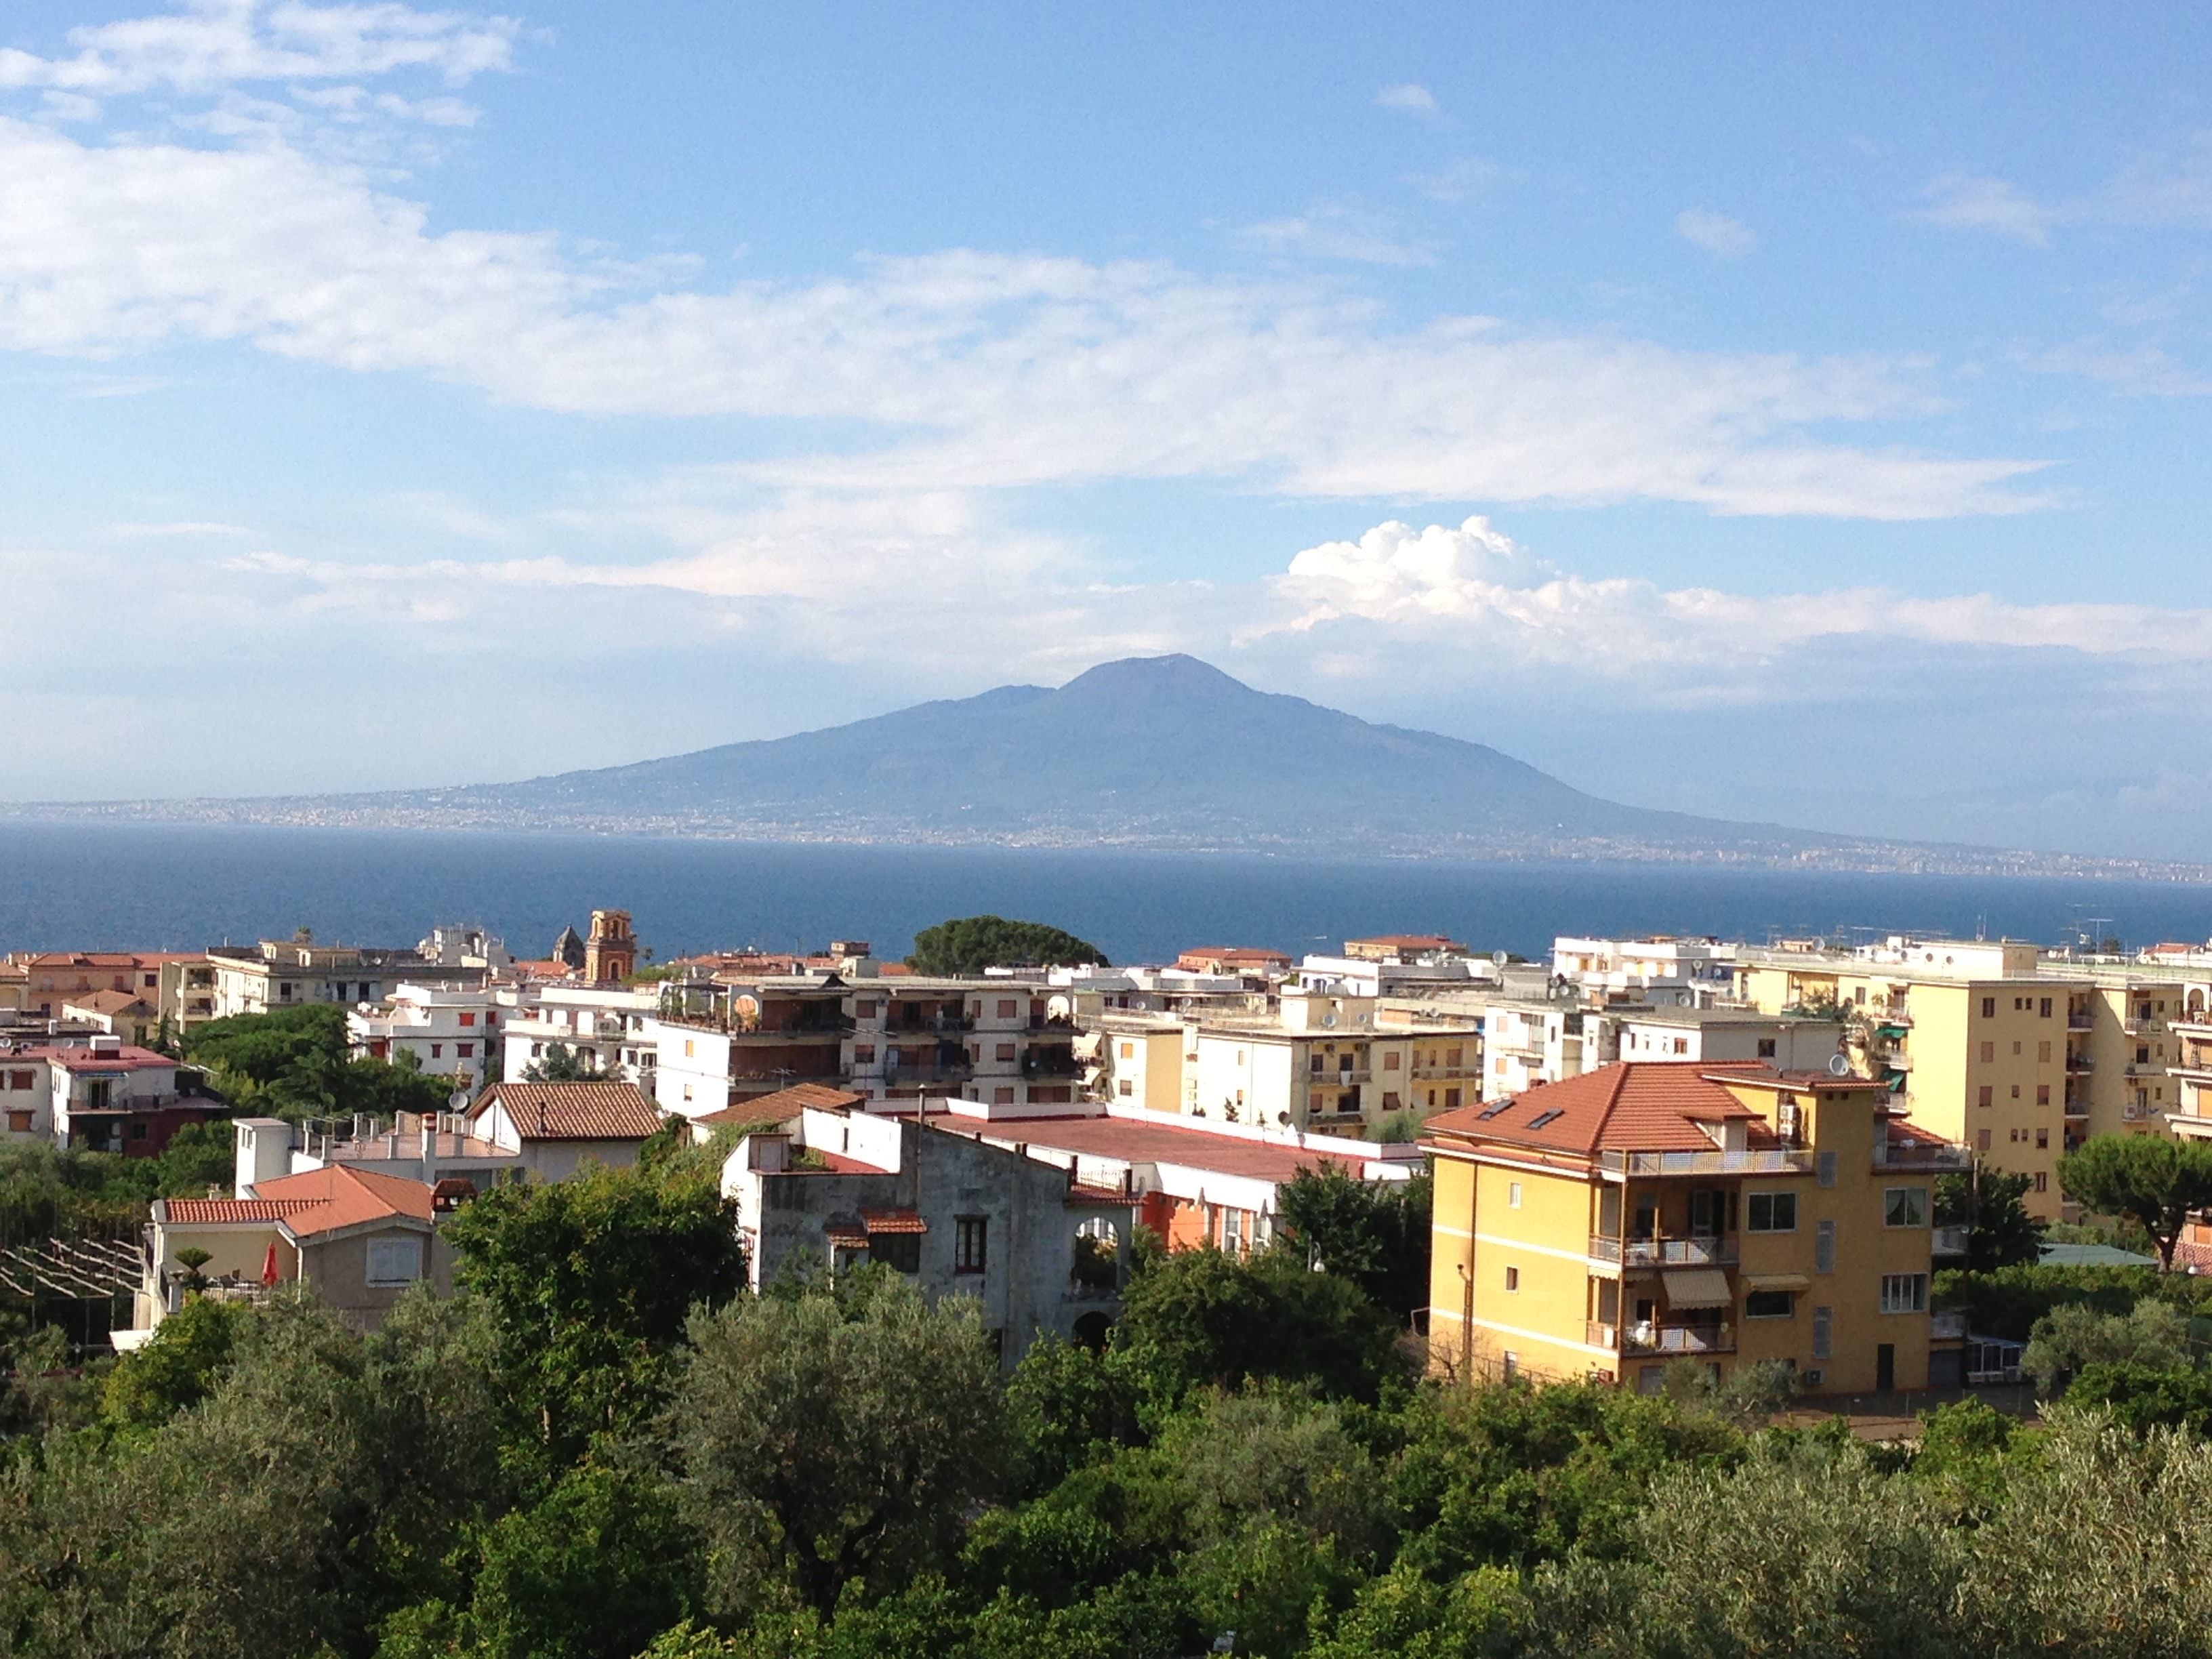 Hilton Sorrento Palace Sea View Room of Vesuvius